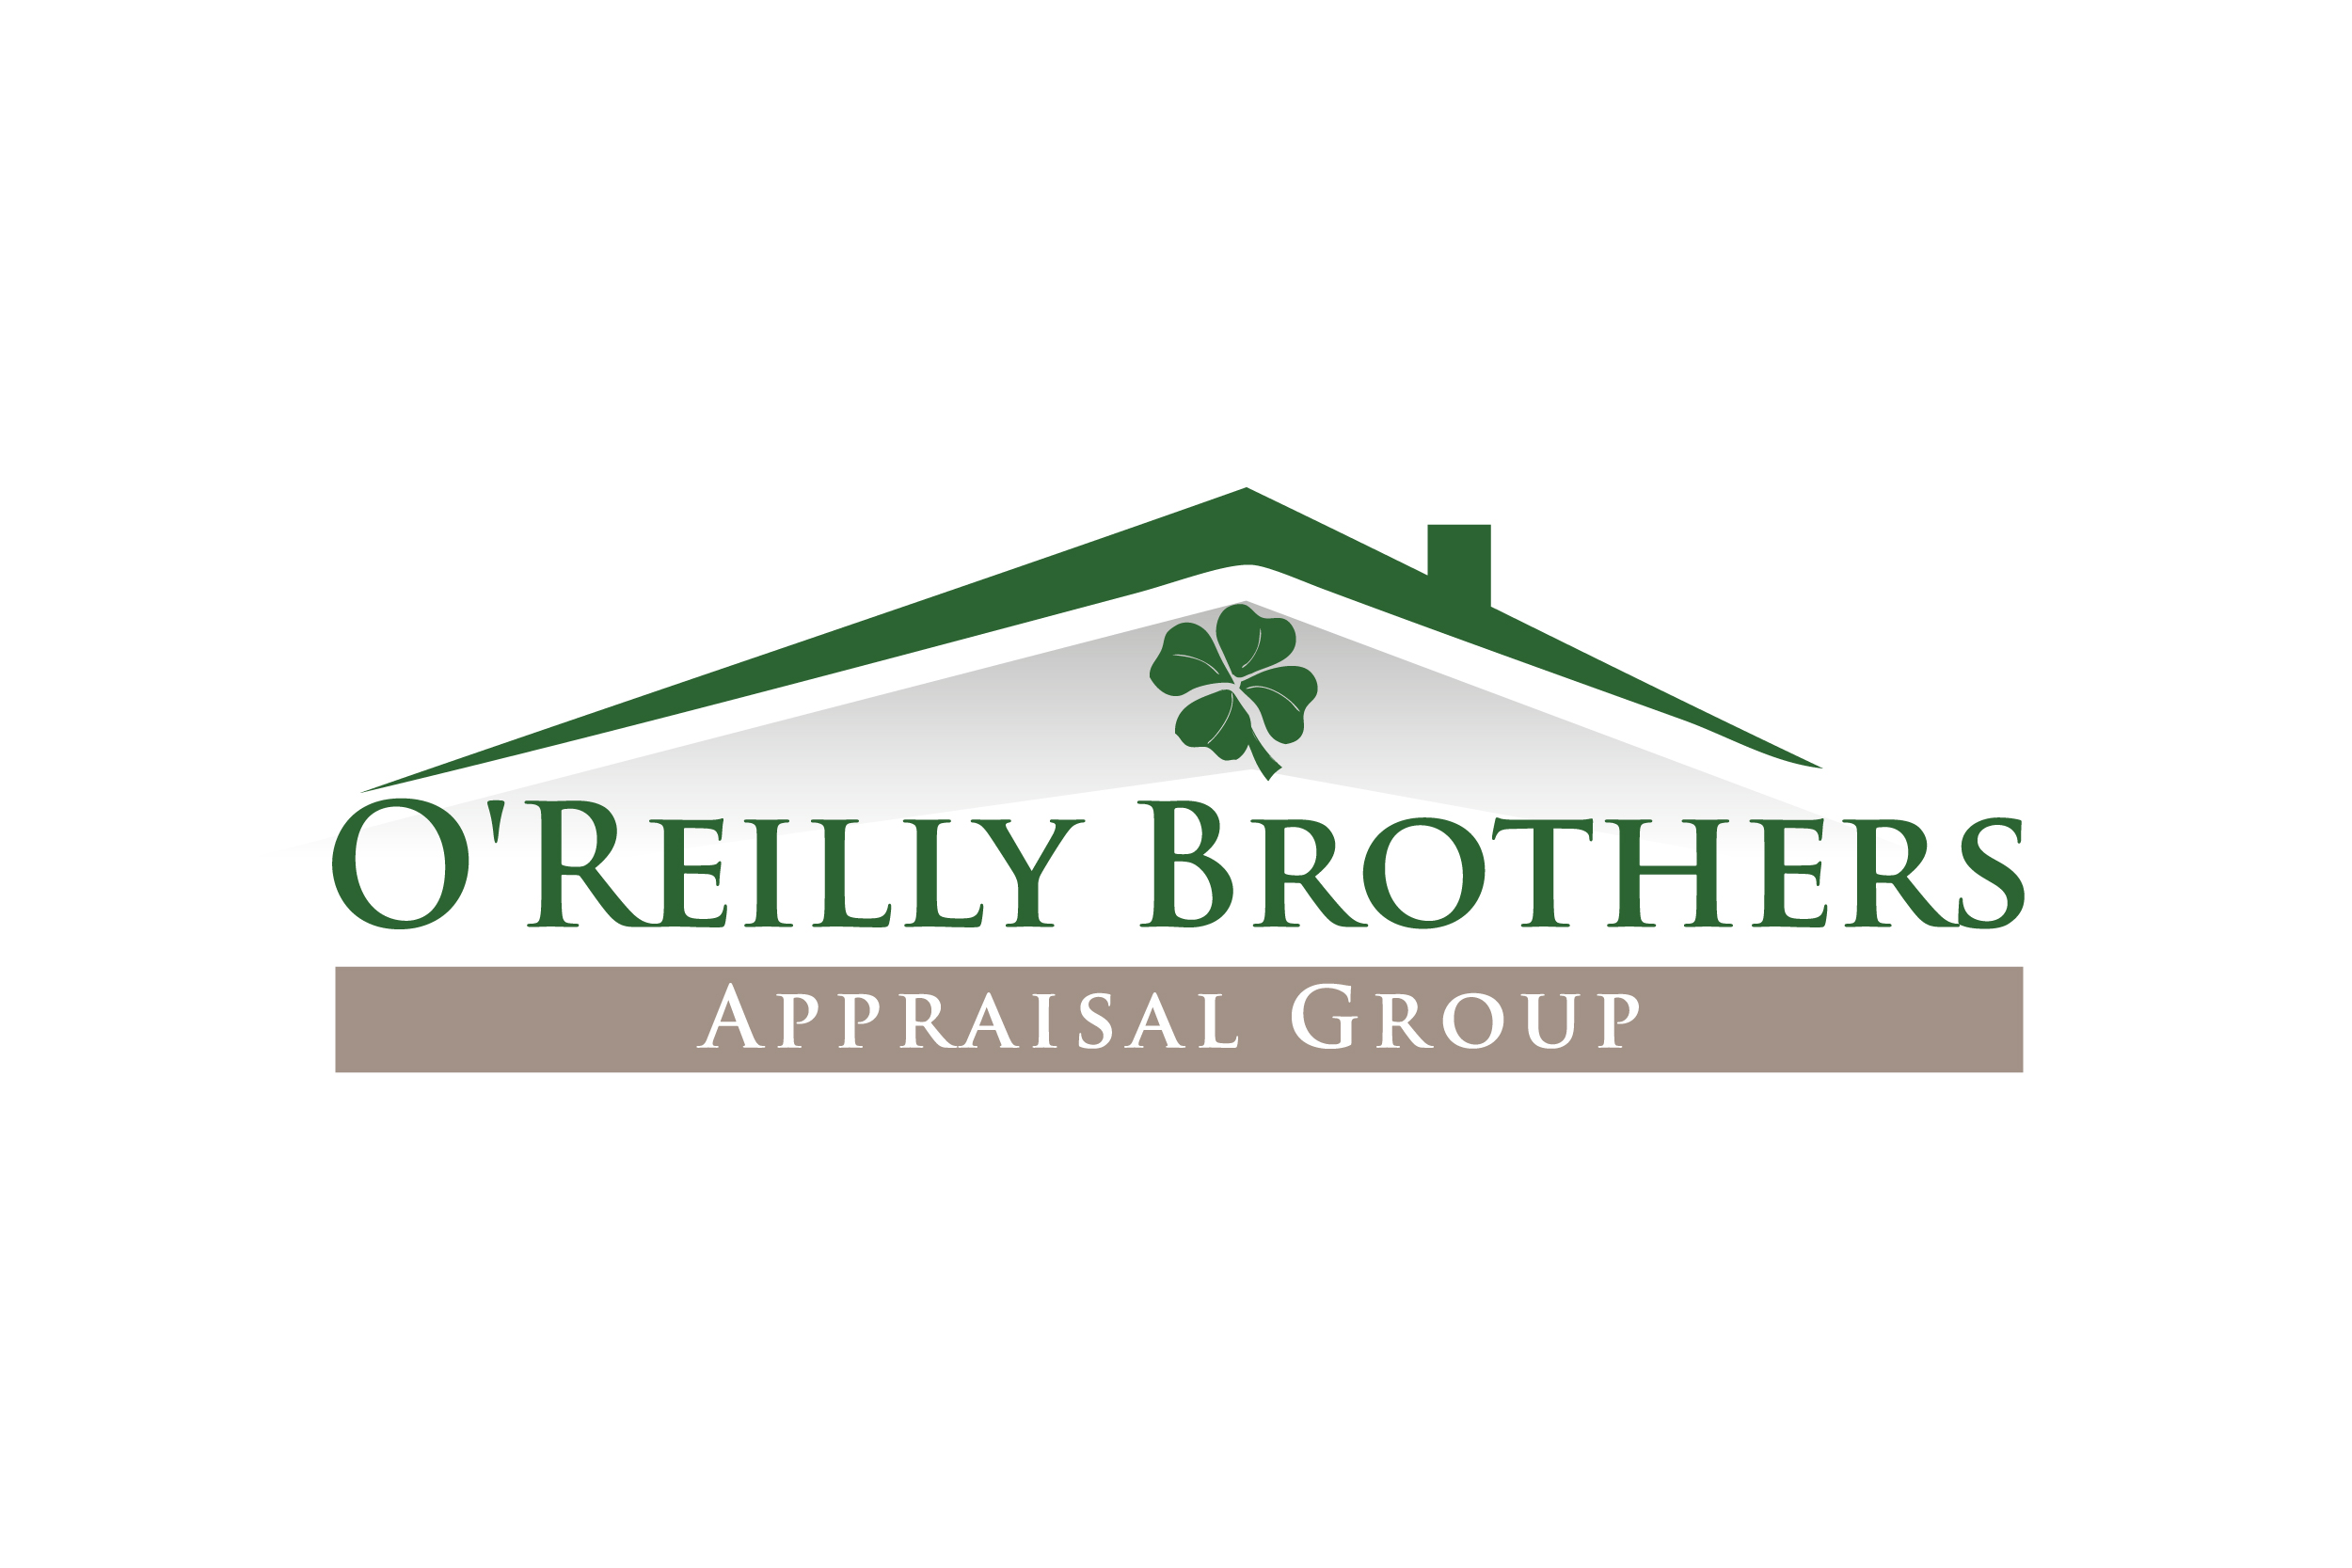 real estate appraisal home appraisal appraiser real estate real estate appraisal home appraisal appraiser real estate appraiser residential appraisals moreno valley ca o reilly brothers appraisal group